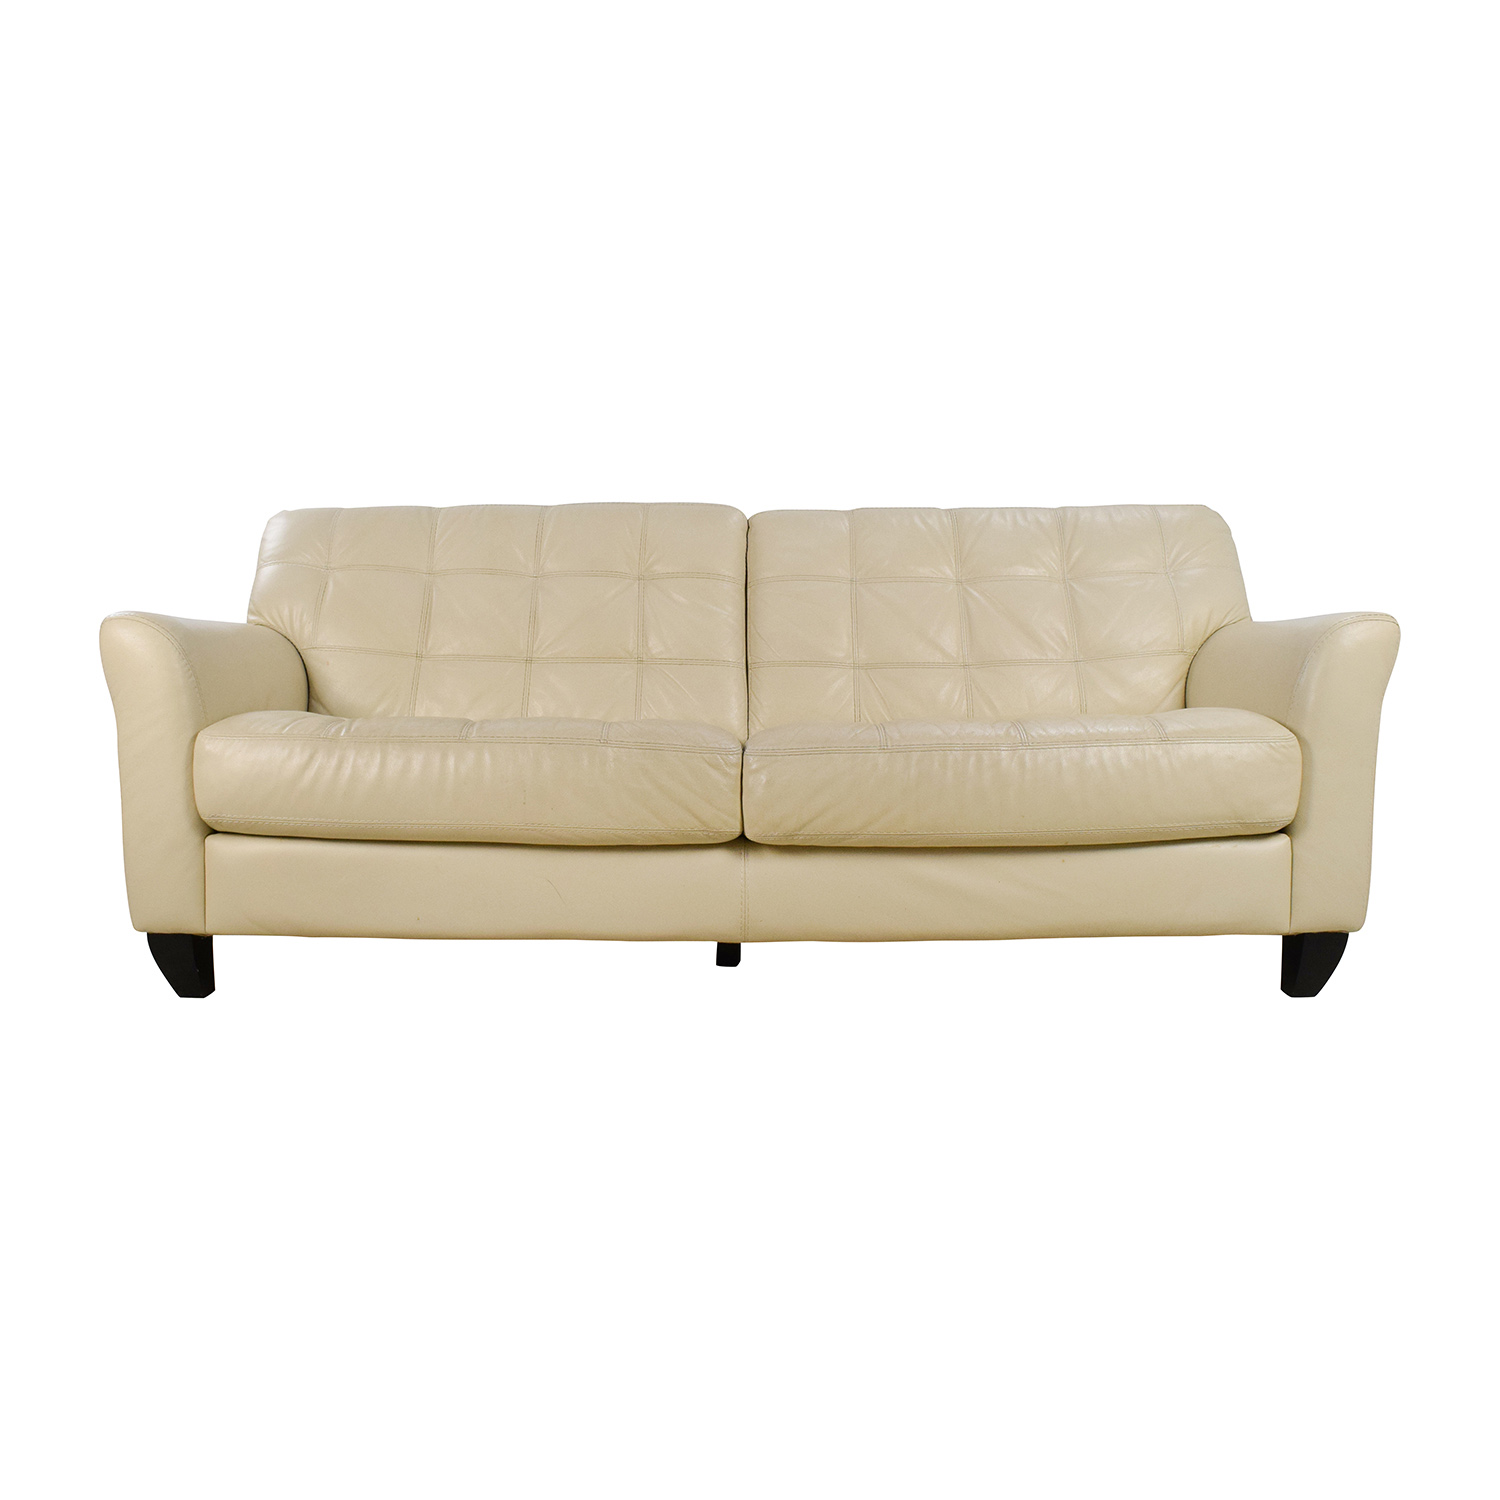 34 Off Raymour And Flanigan Raymour Flanigan Bryant - leather sofa traditional white